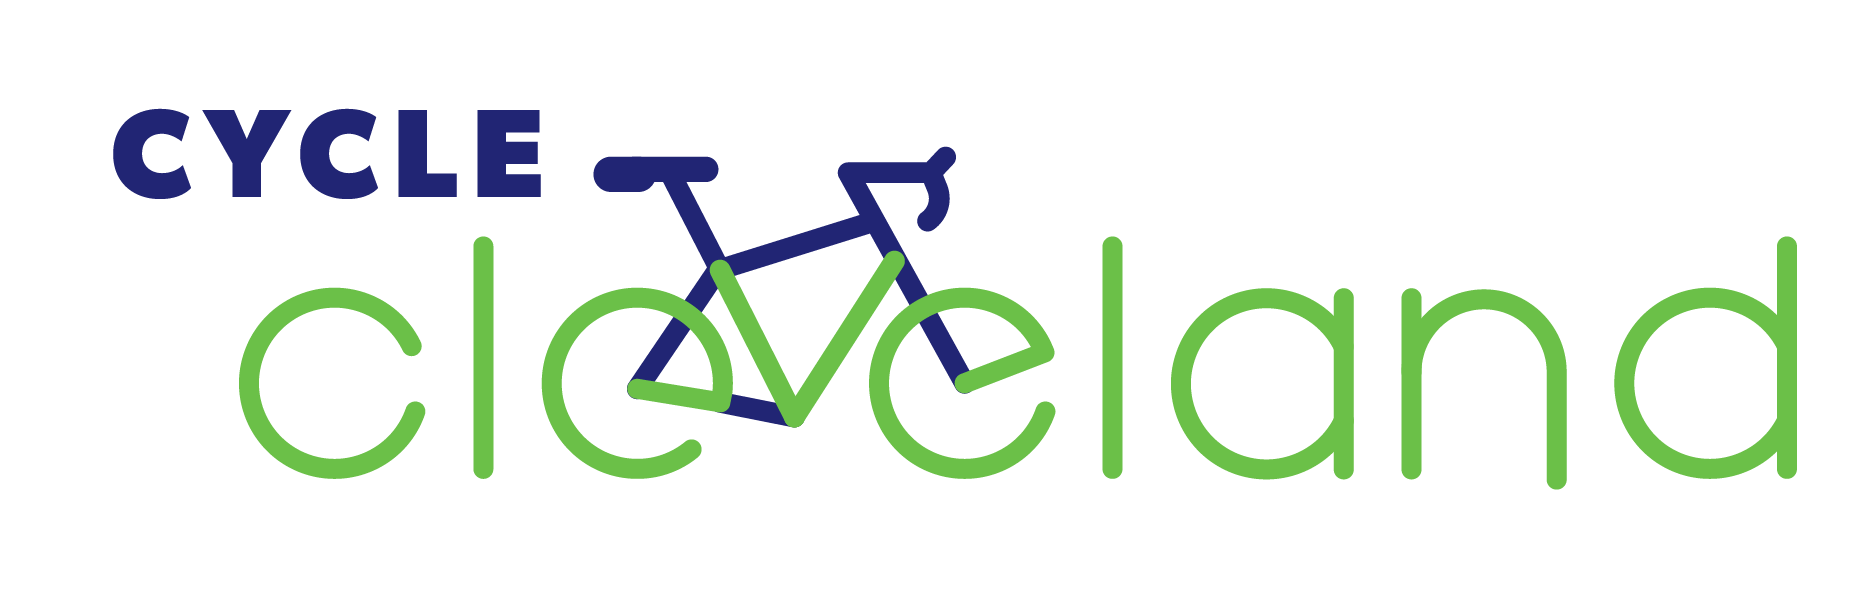 CycleCleveland_option1.png